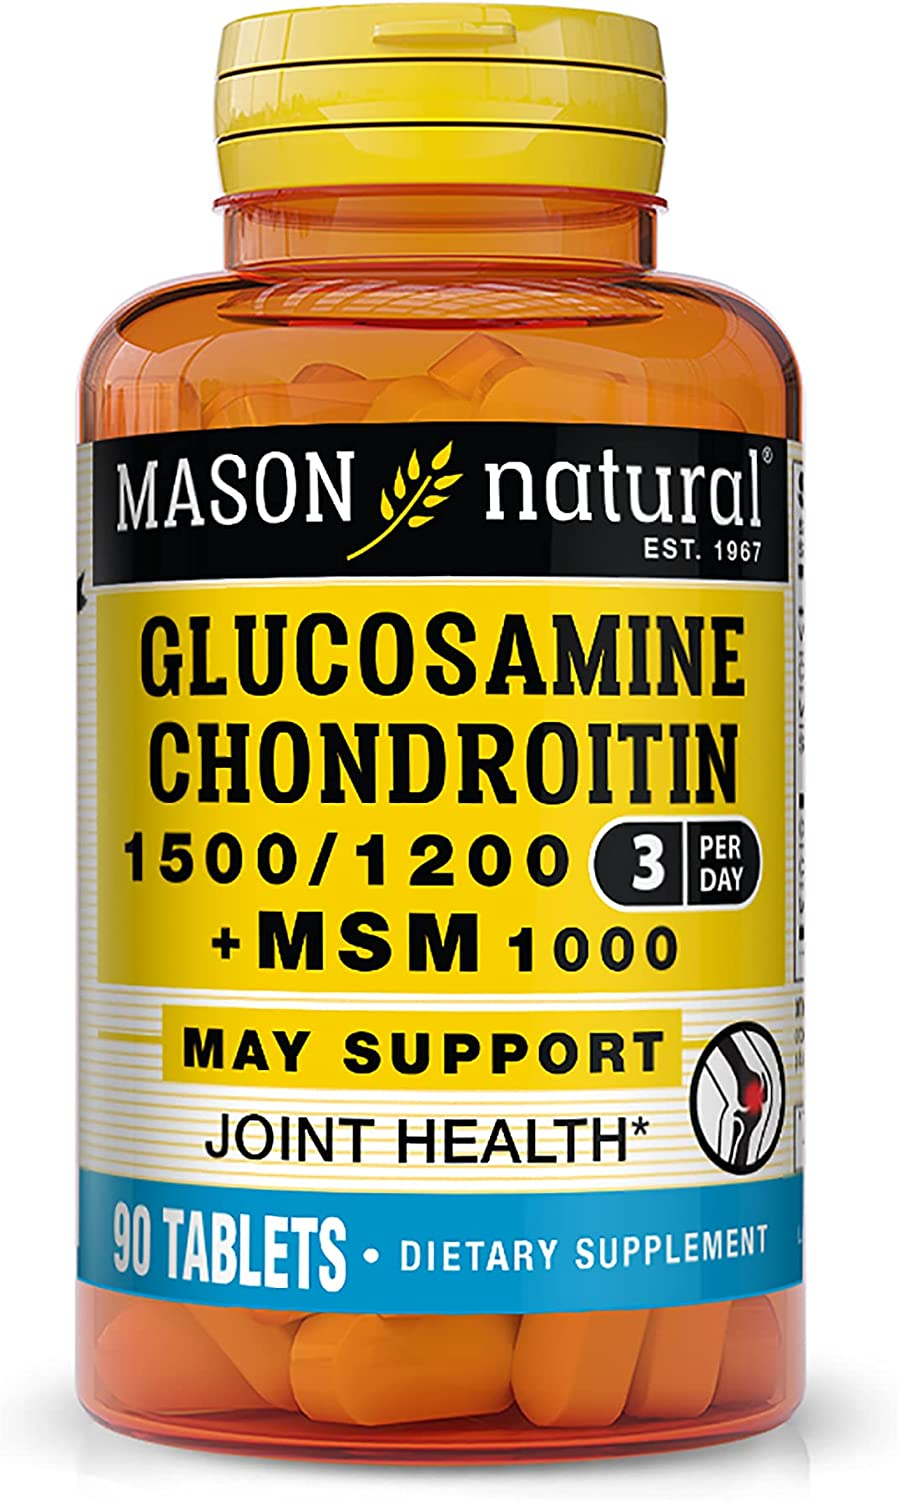 Mason Natural Glucosamine Online limited product Chondroitin 1500 with 1200 1000 New products, world's highest quality popular! + MSM